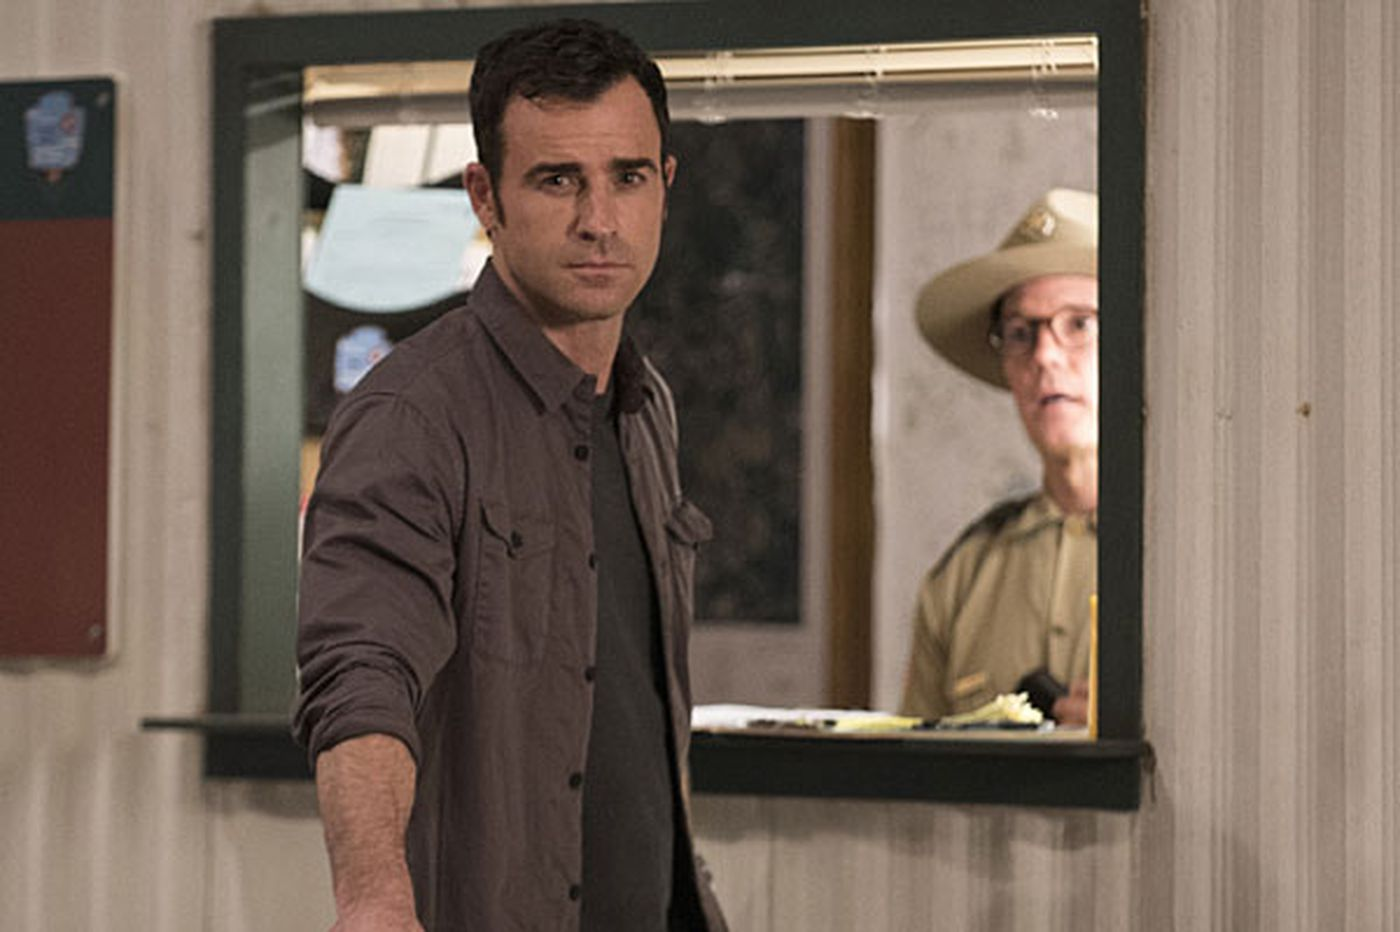 Review: 'The Leftovers' returns better than ever